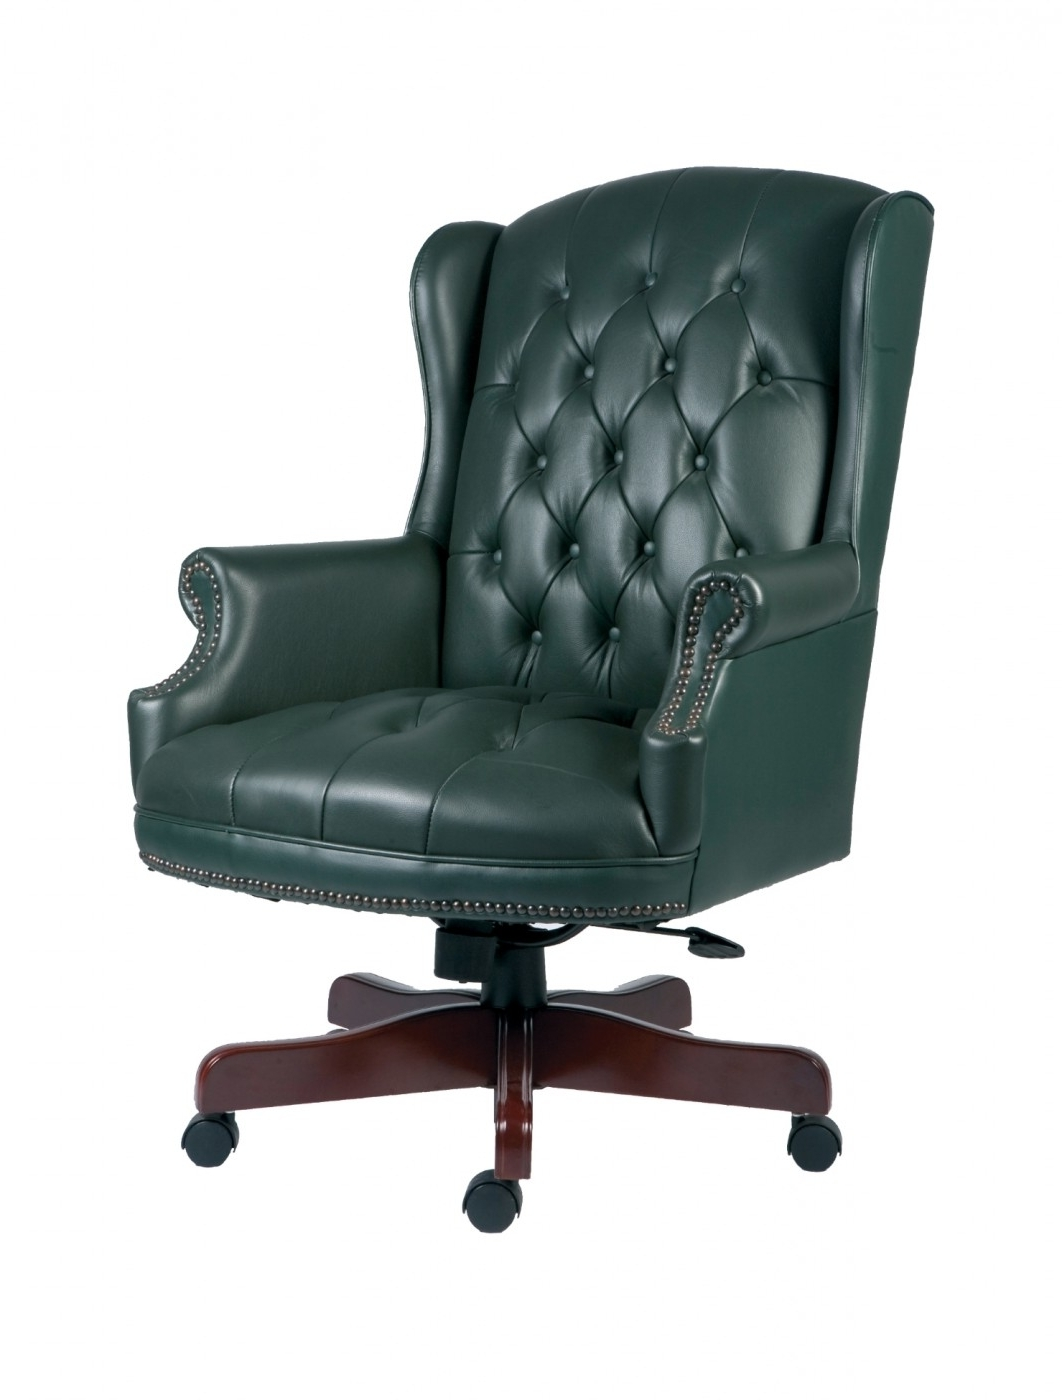 121 Office Pertaining To Latest Green Executive Office Chairs (View 8 of 20)